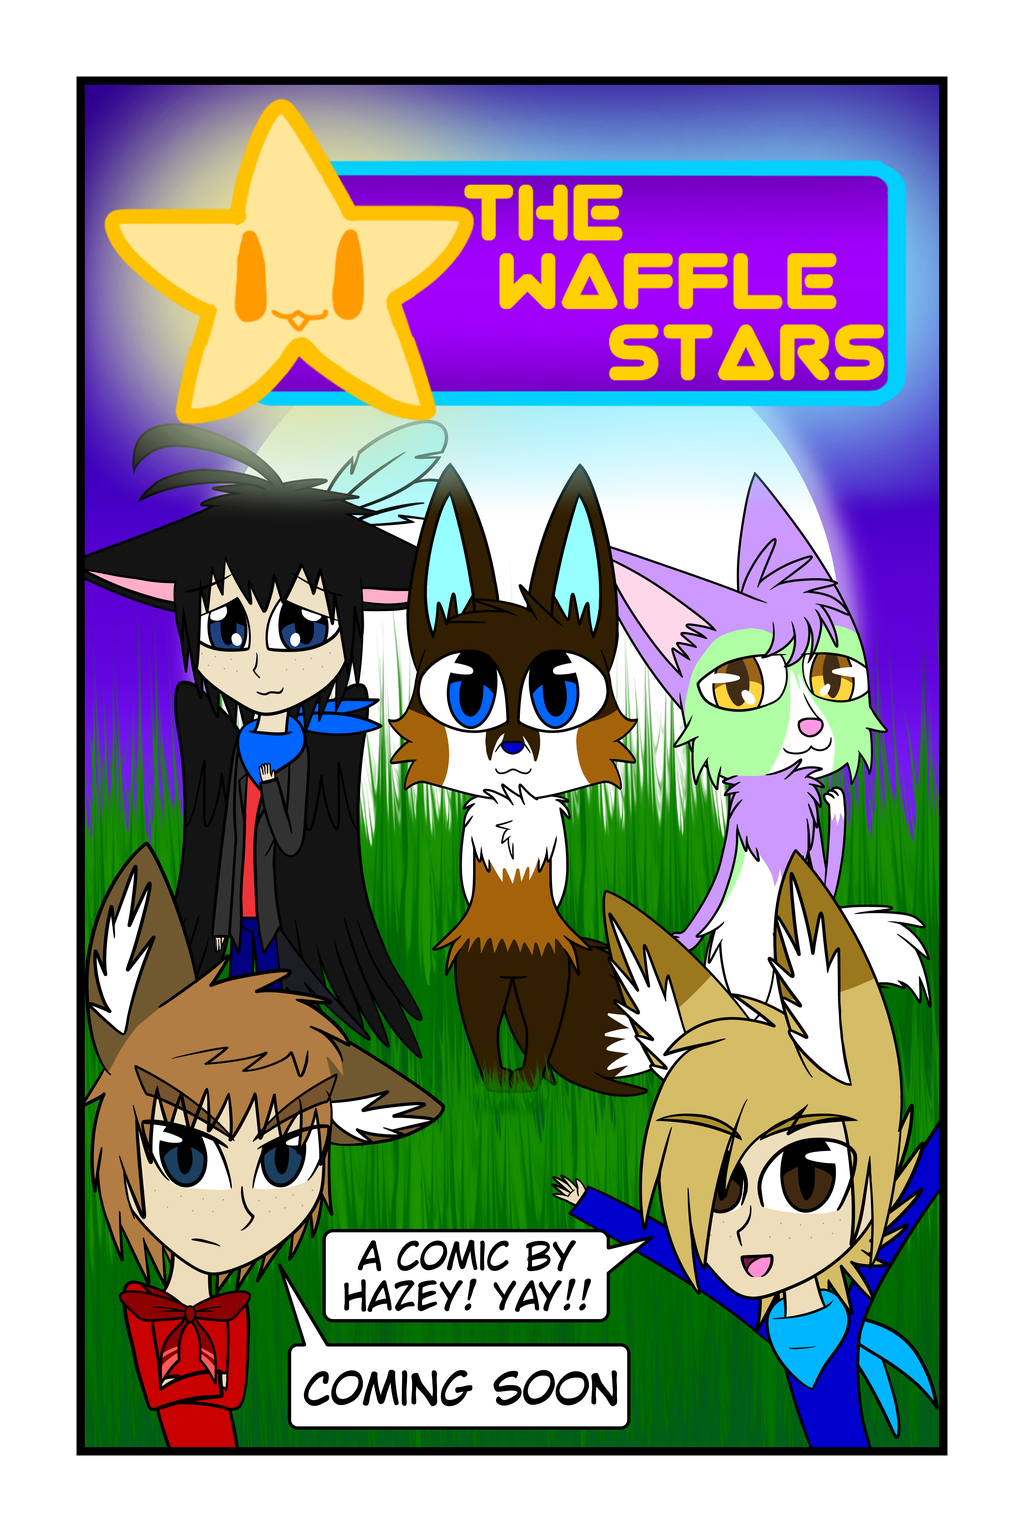 Most recent image: Coming Soon: The Waffle Stars